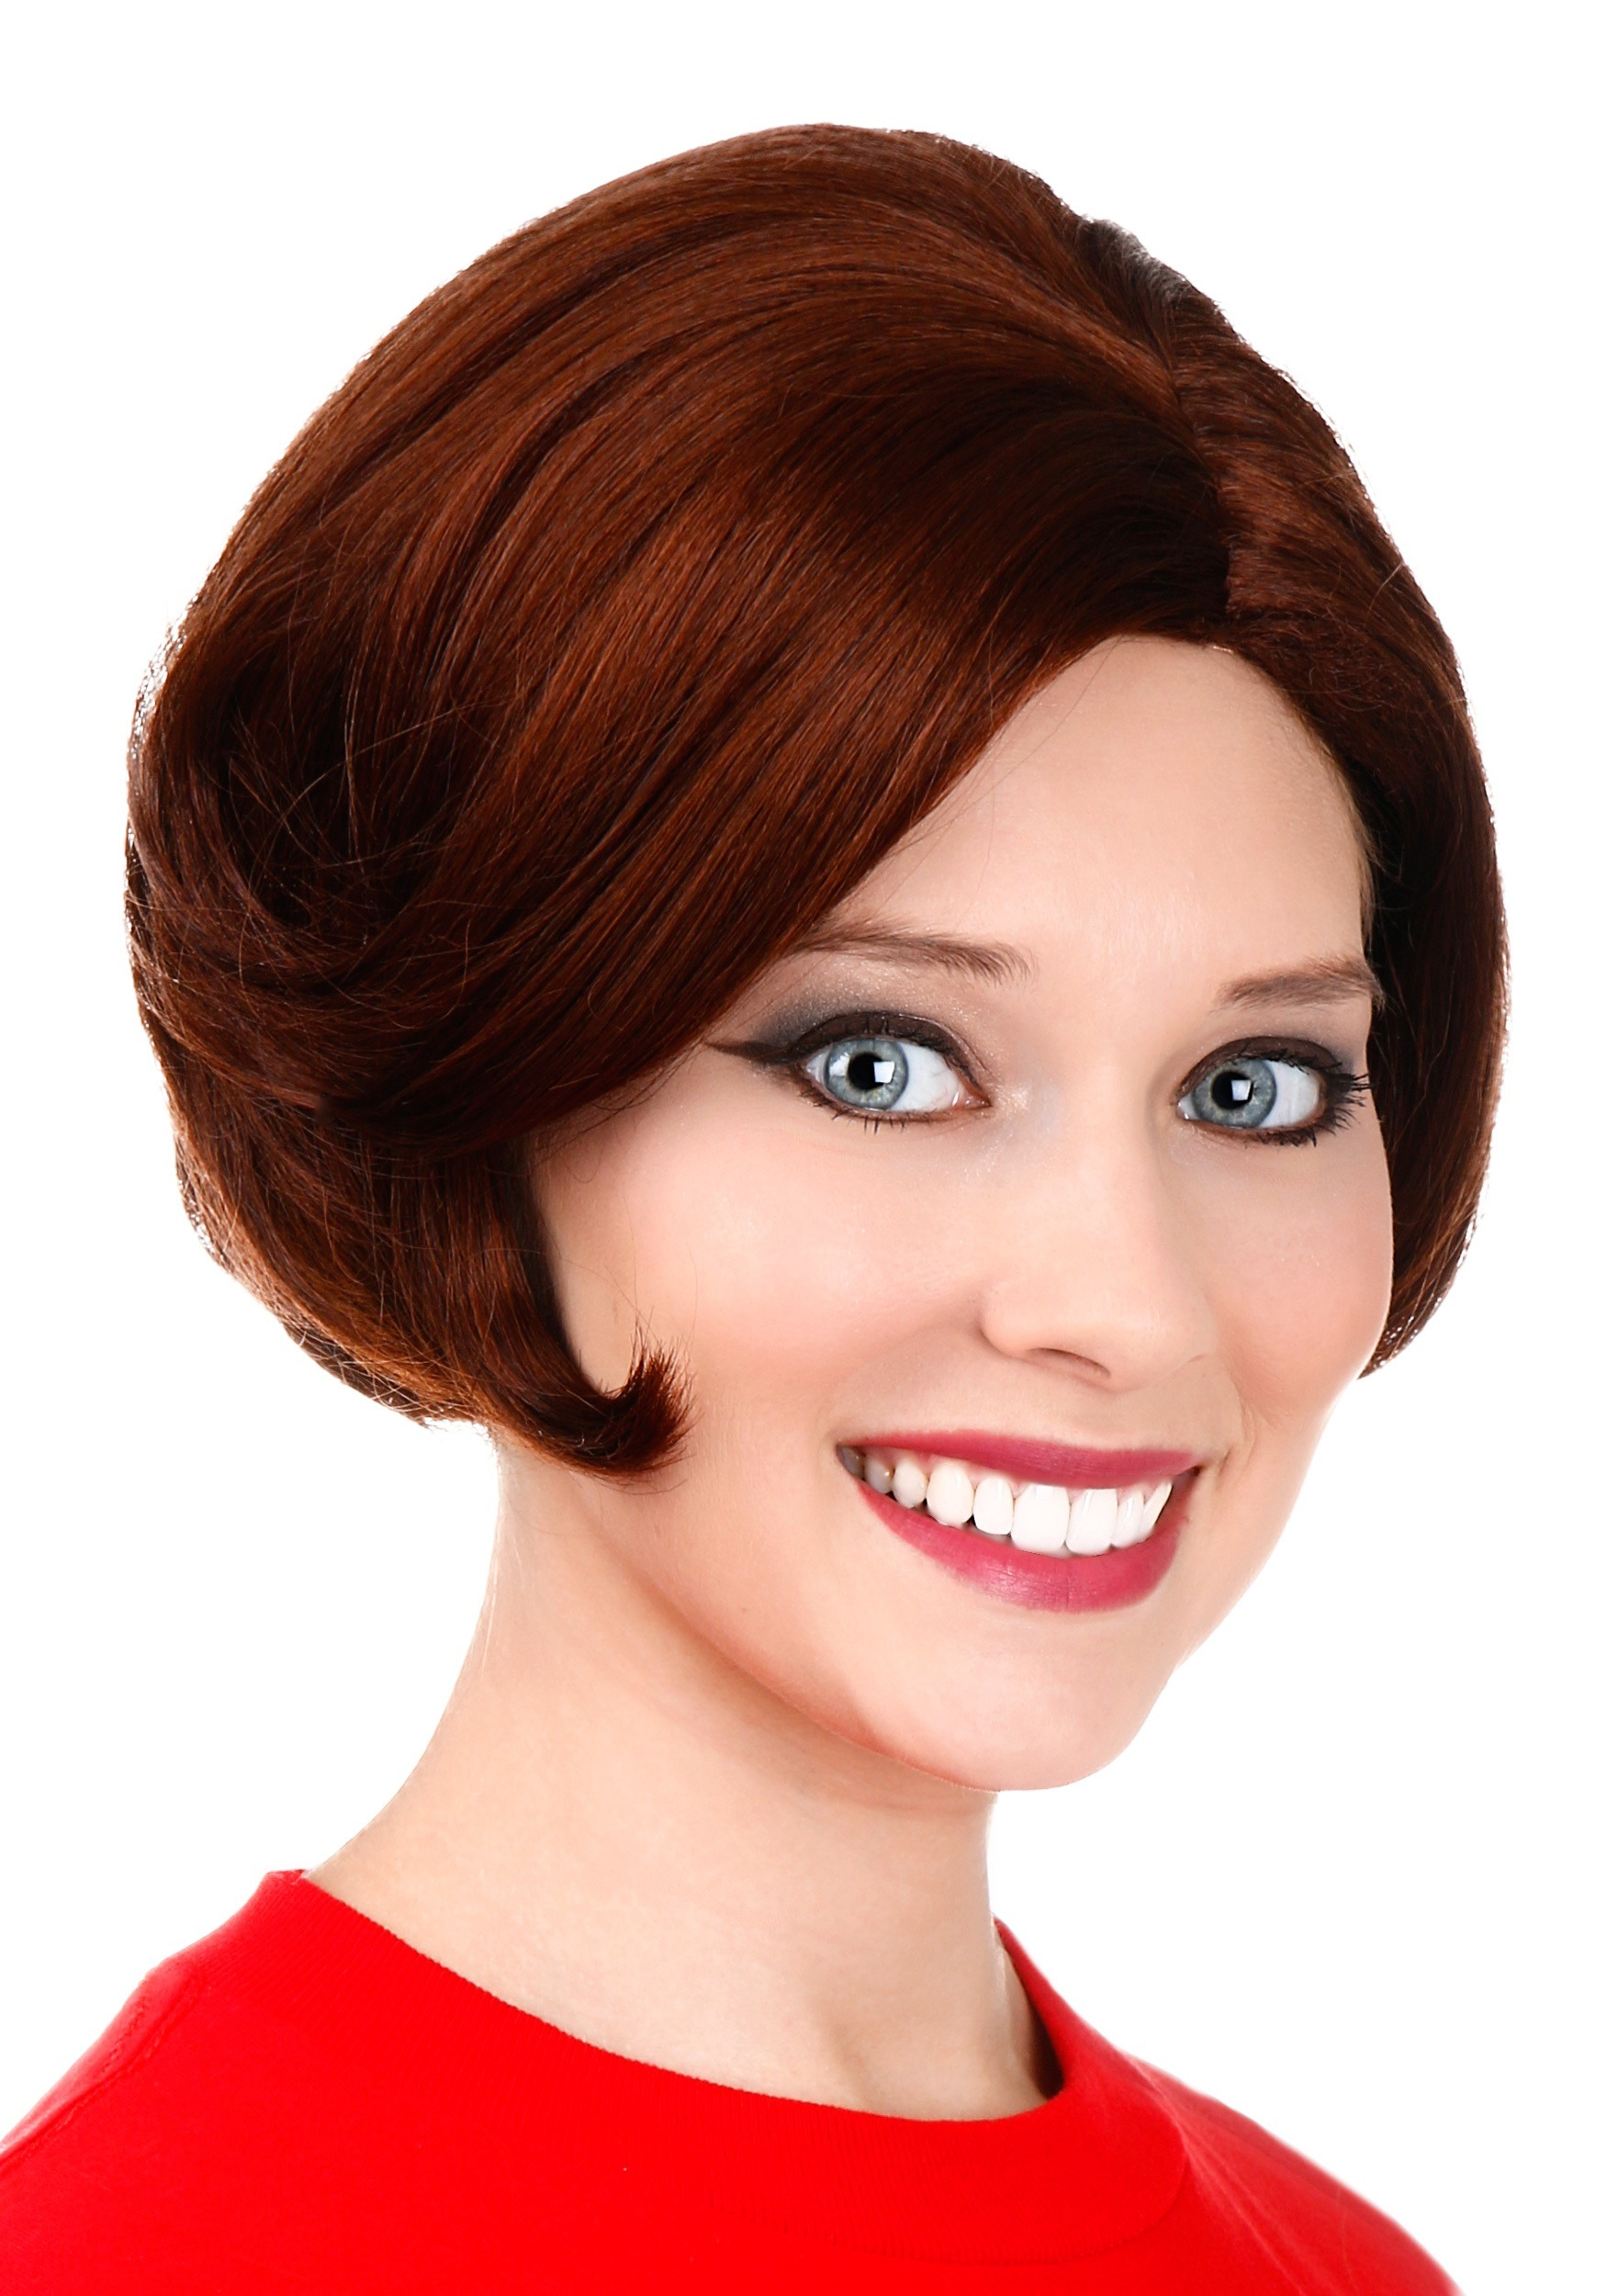 Women's Incredible Superhero Wig